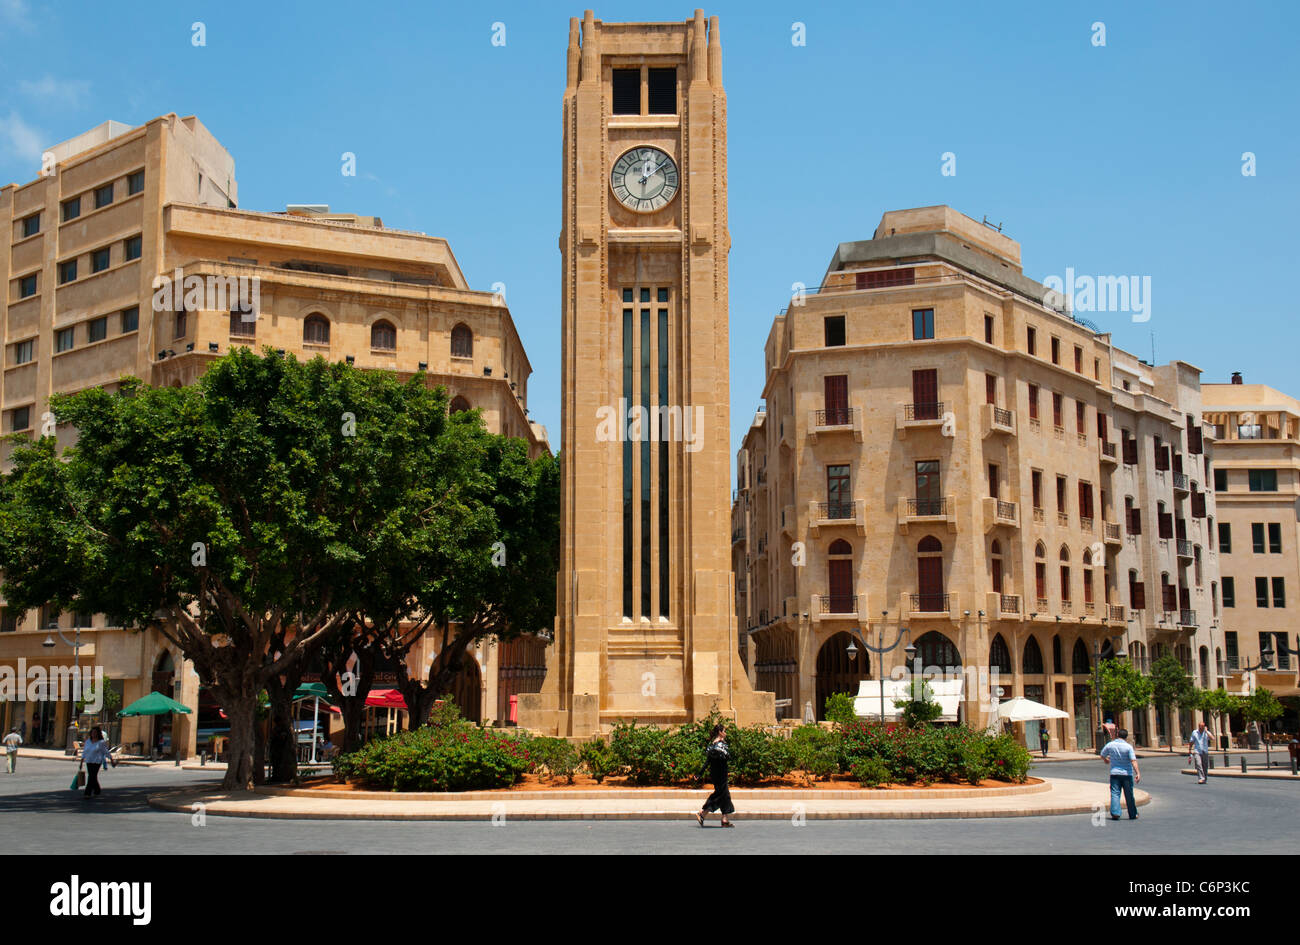 La place de l'Etoile. Le centre-ville de Beyrouth. Le Liban. Photo Stock